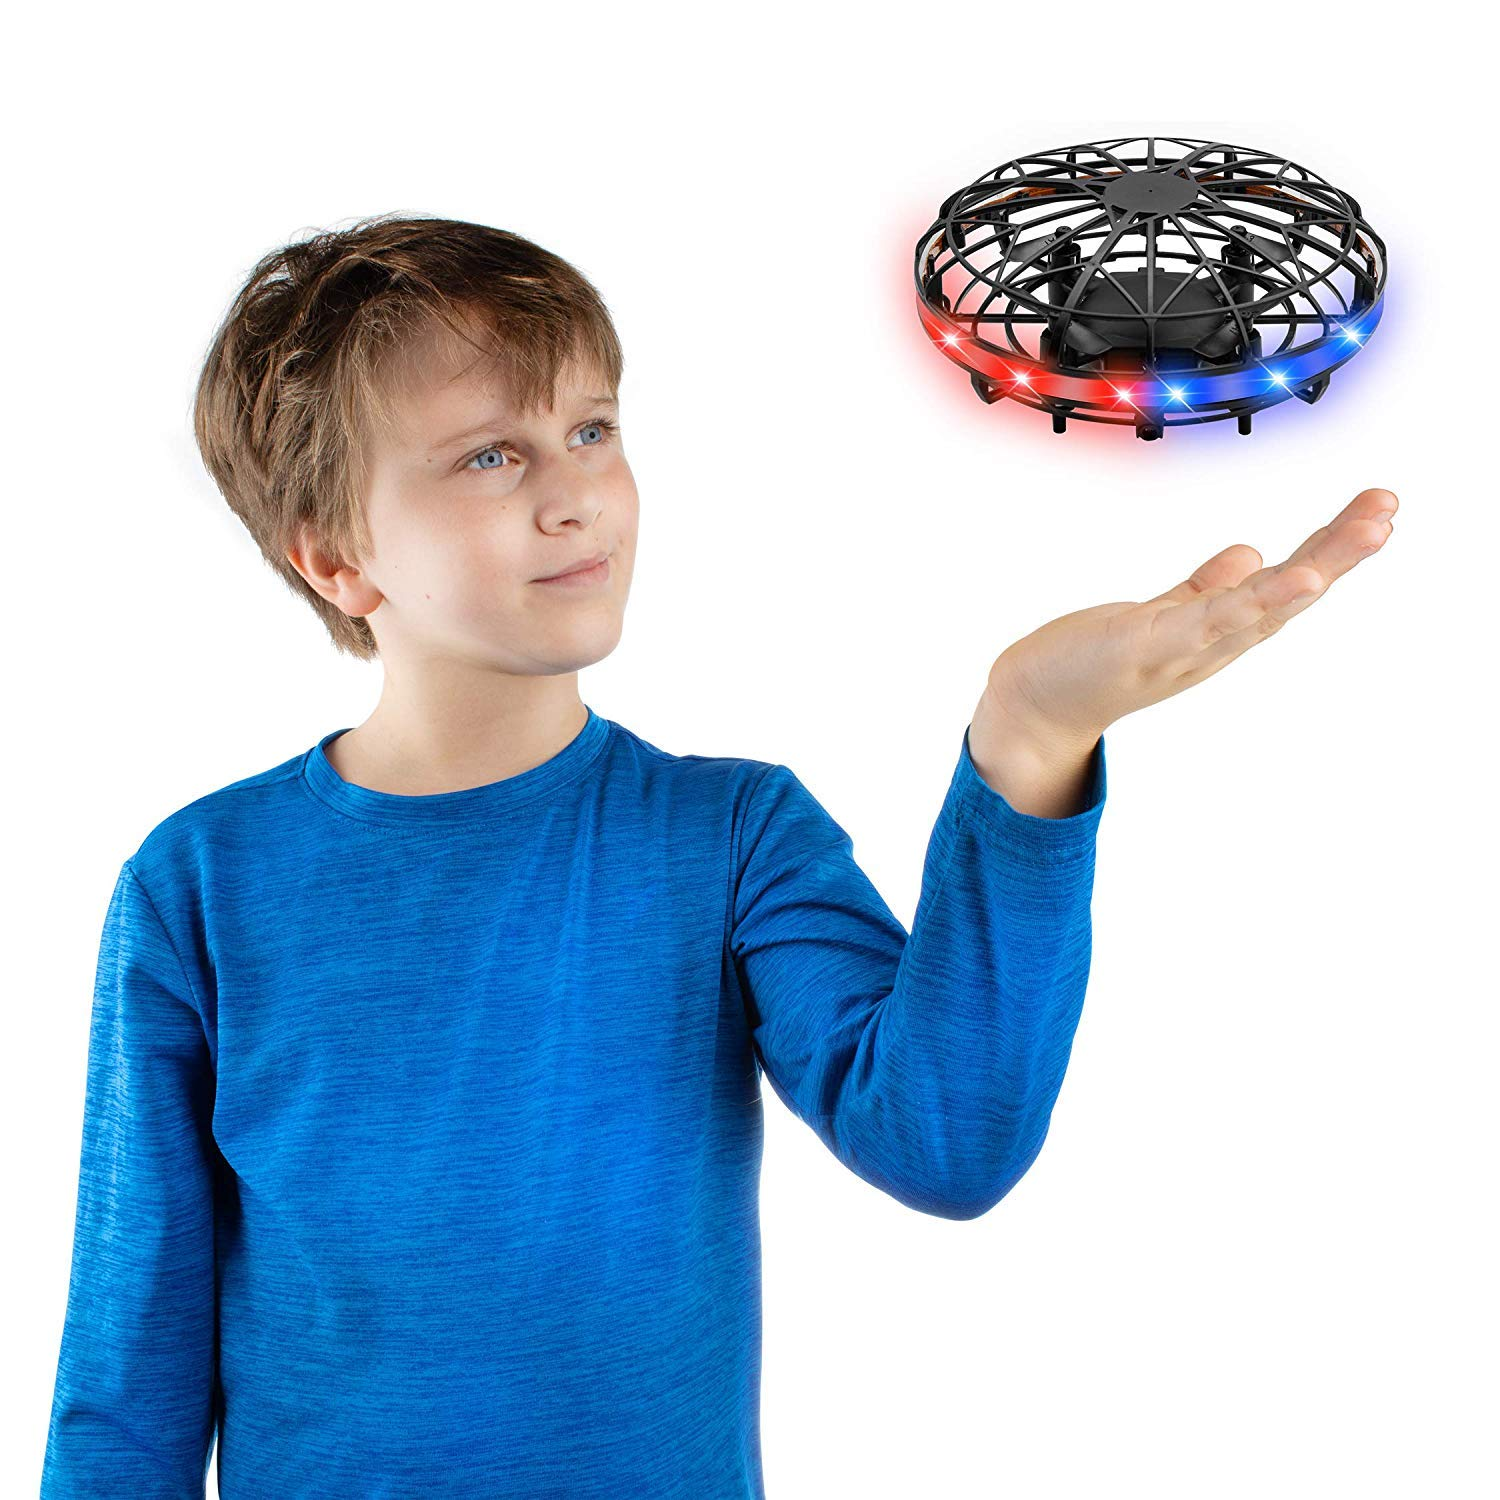 Force1 Scoot 2 LED Hand Drones for Kids - Kids Drone, Flying Ball Drone, Light Up Toys for Boys and Girls (Matte Black) by Force1